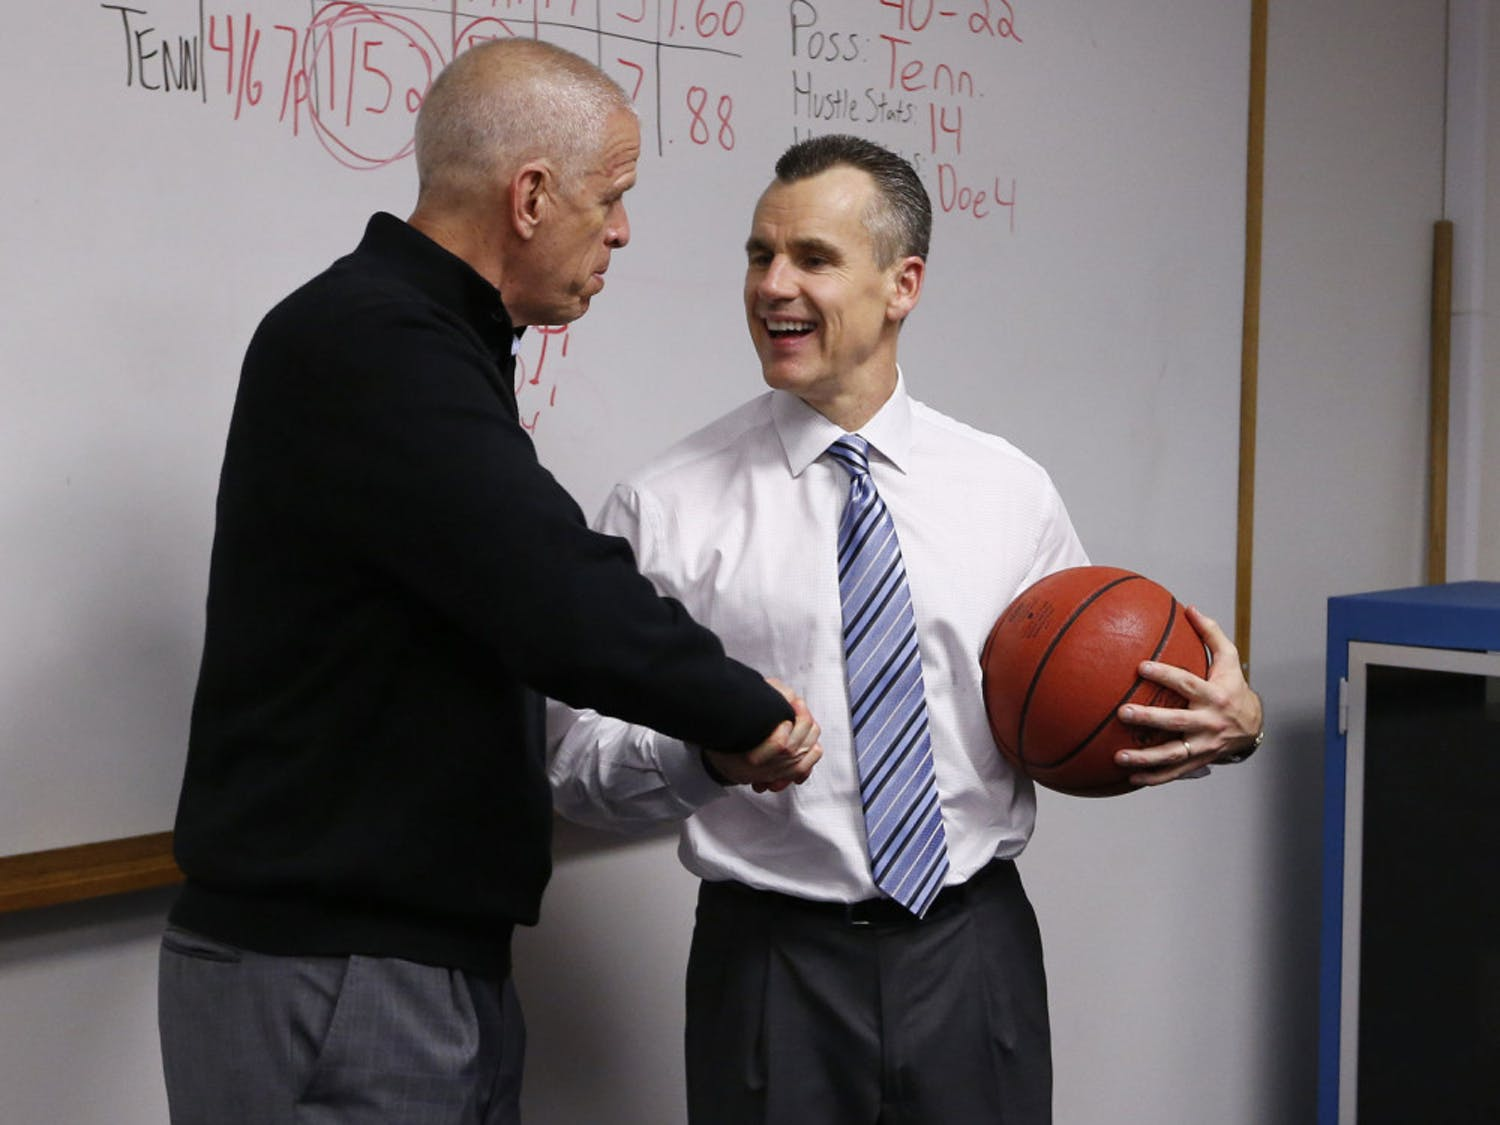 Jeremy Foley shakes hands with Billy Donovan during the Gators' game against the Tennessee Volunteers on Saturday, February 28, 2015, at the Stephen C. O'Connell Center in Gainesville, FL / UAA Communications photo by Tim Casey